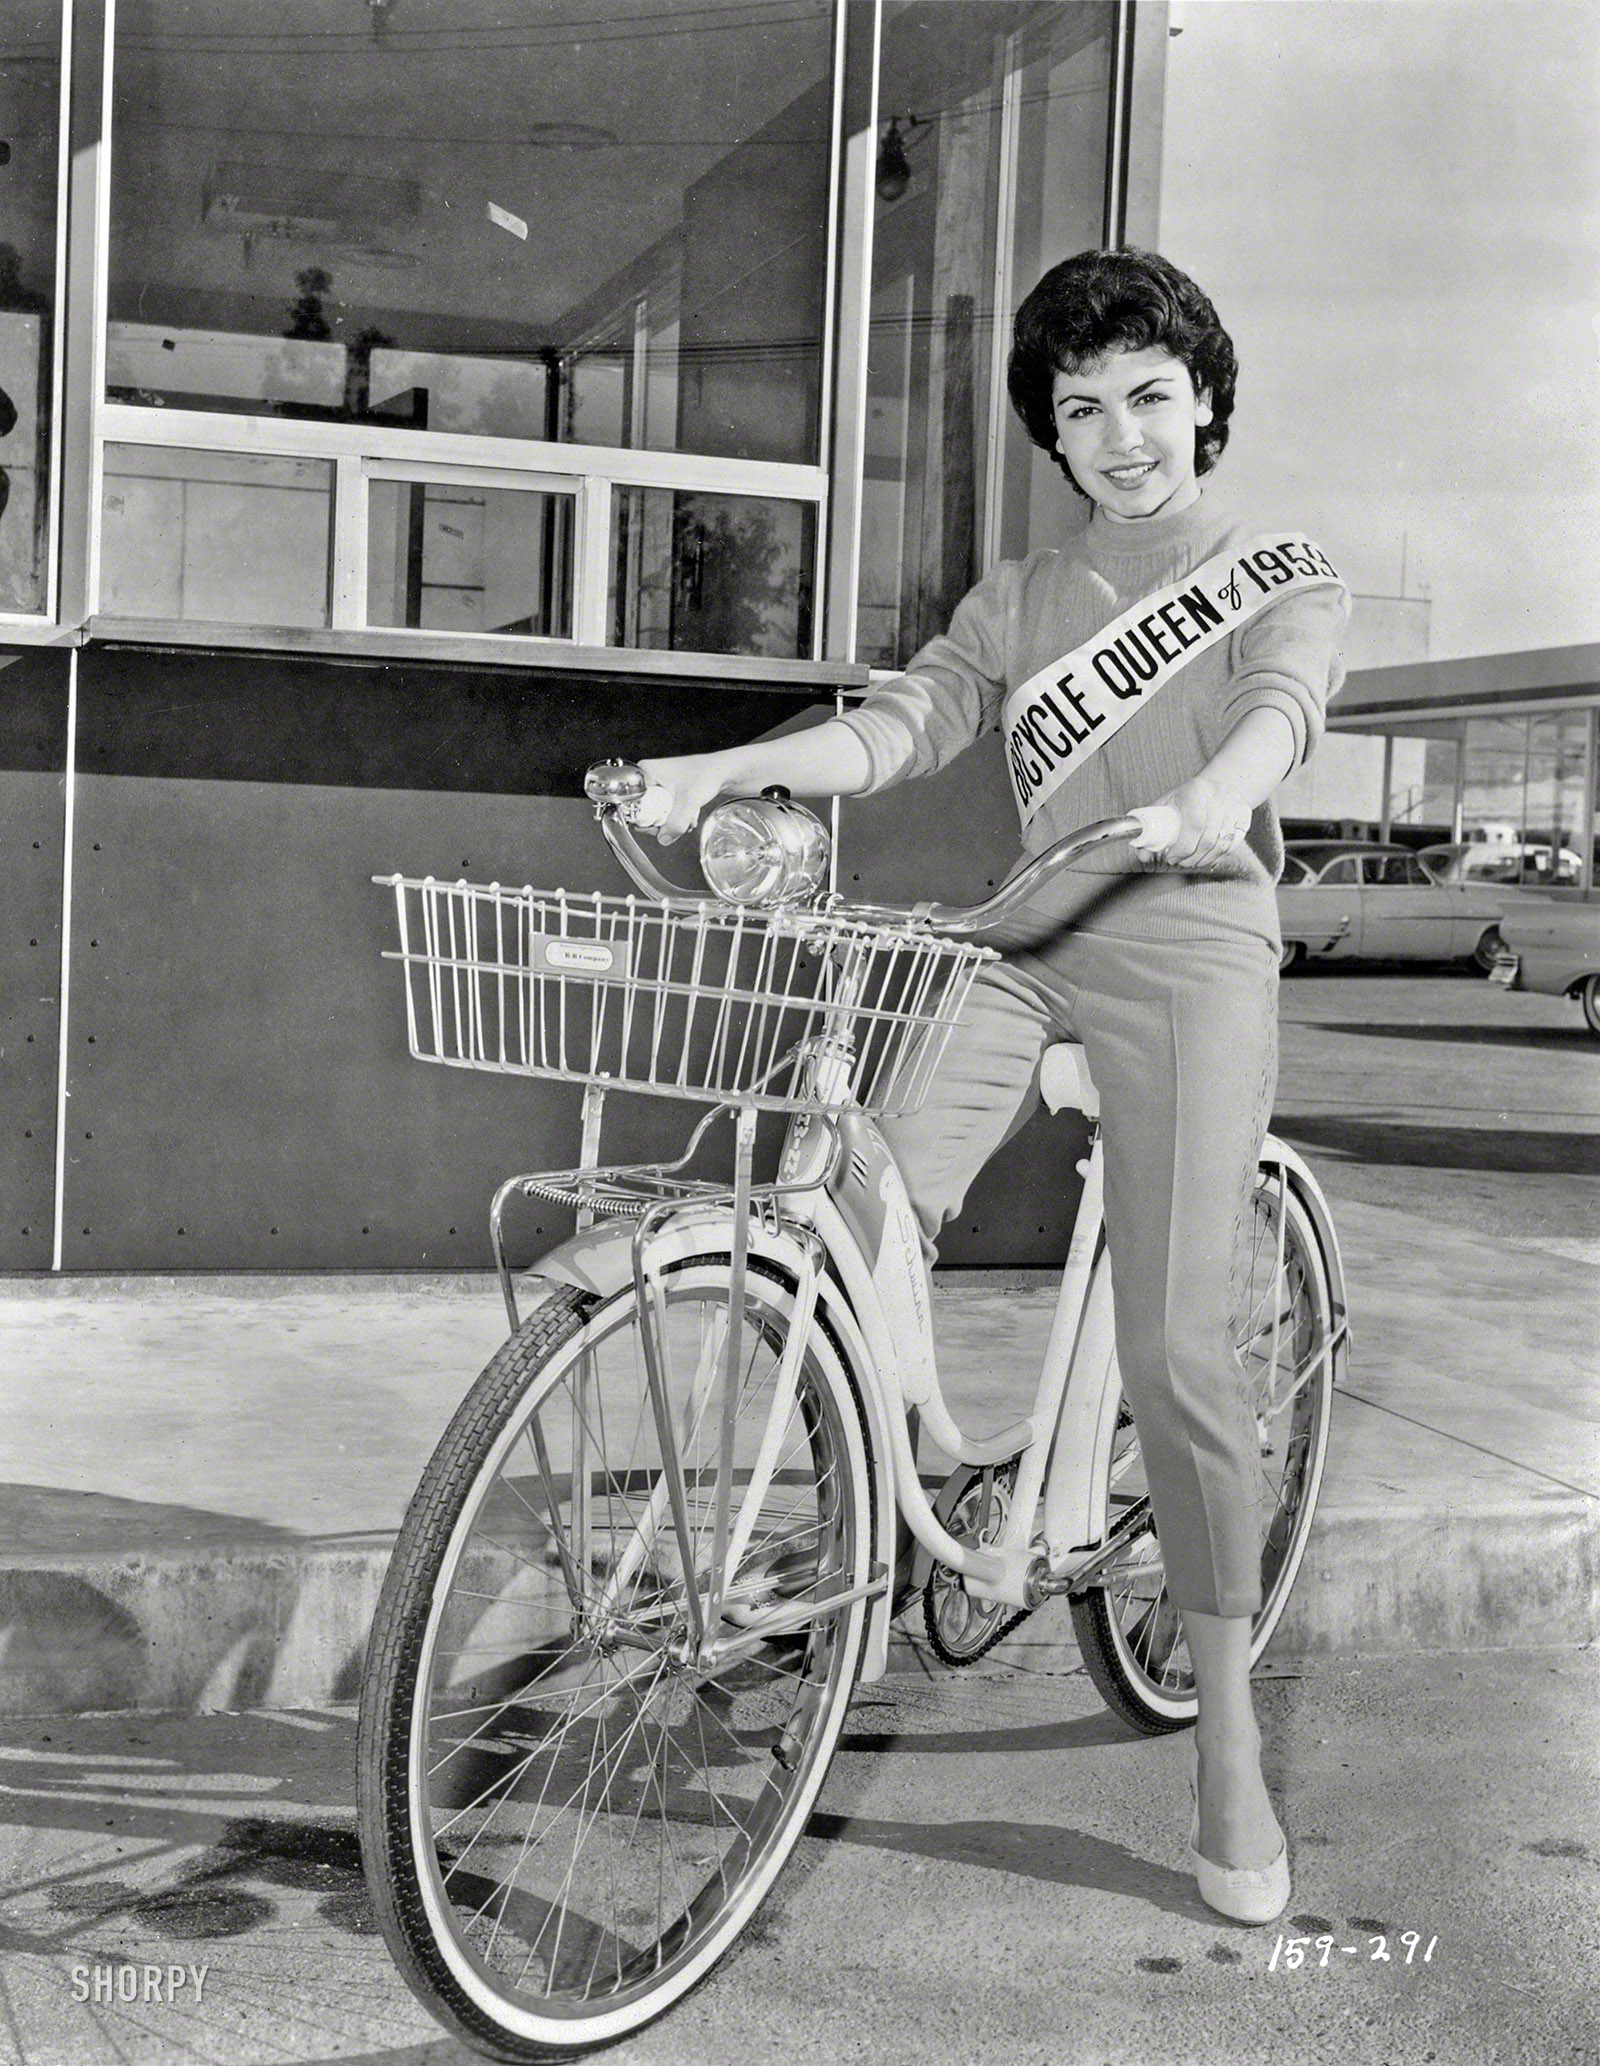 Shorpy Historic Picture Archive :: Bicycle Queen: 1959 high-resolution photo